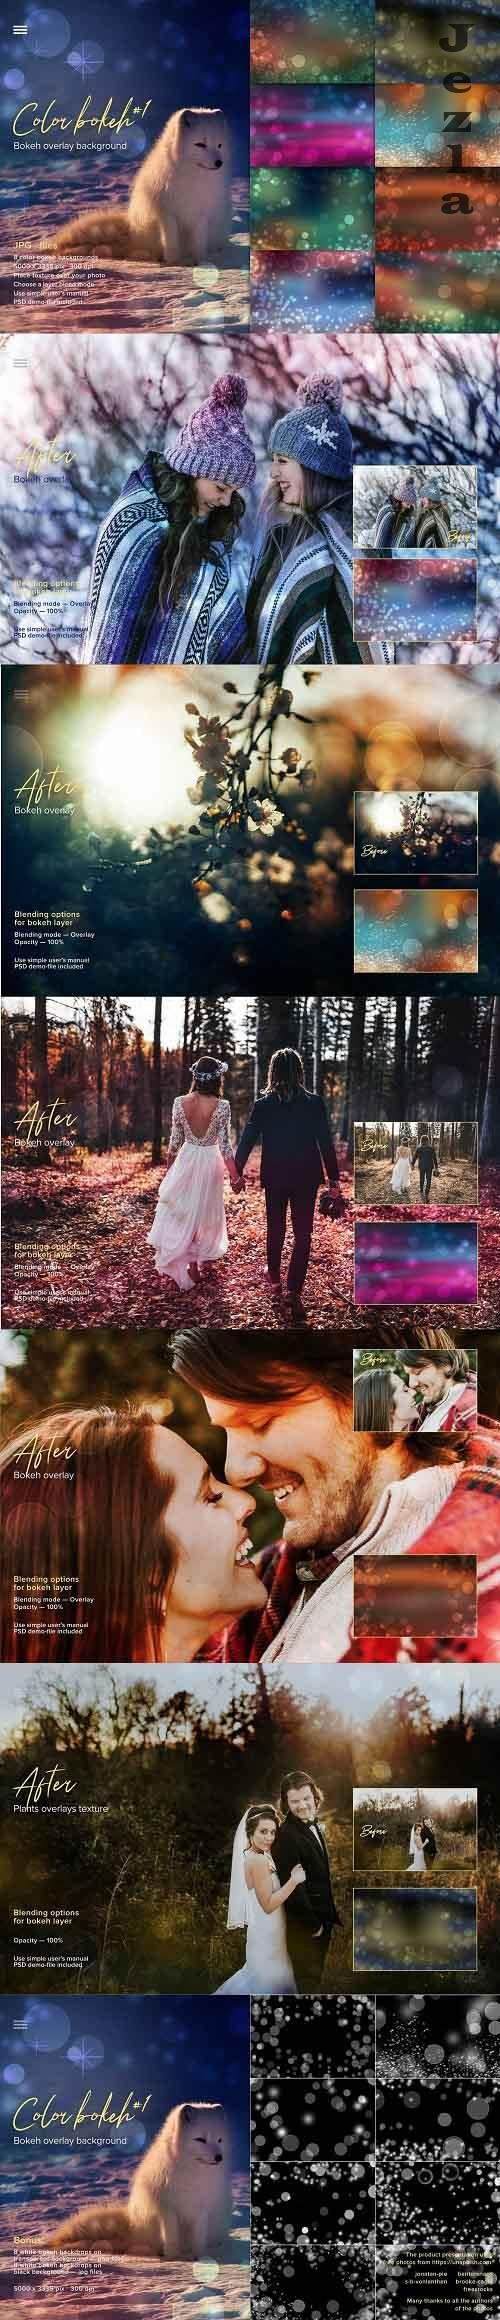 Color bokeh overlay backgrounds #1 - 5876146